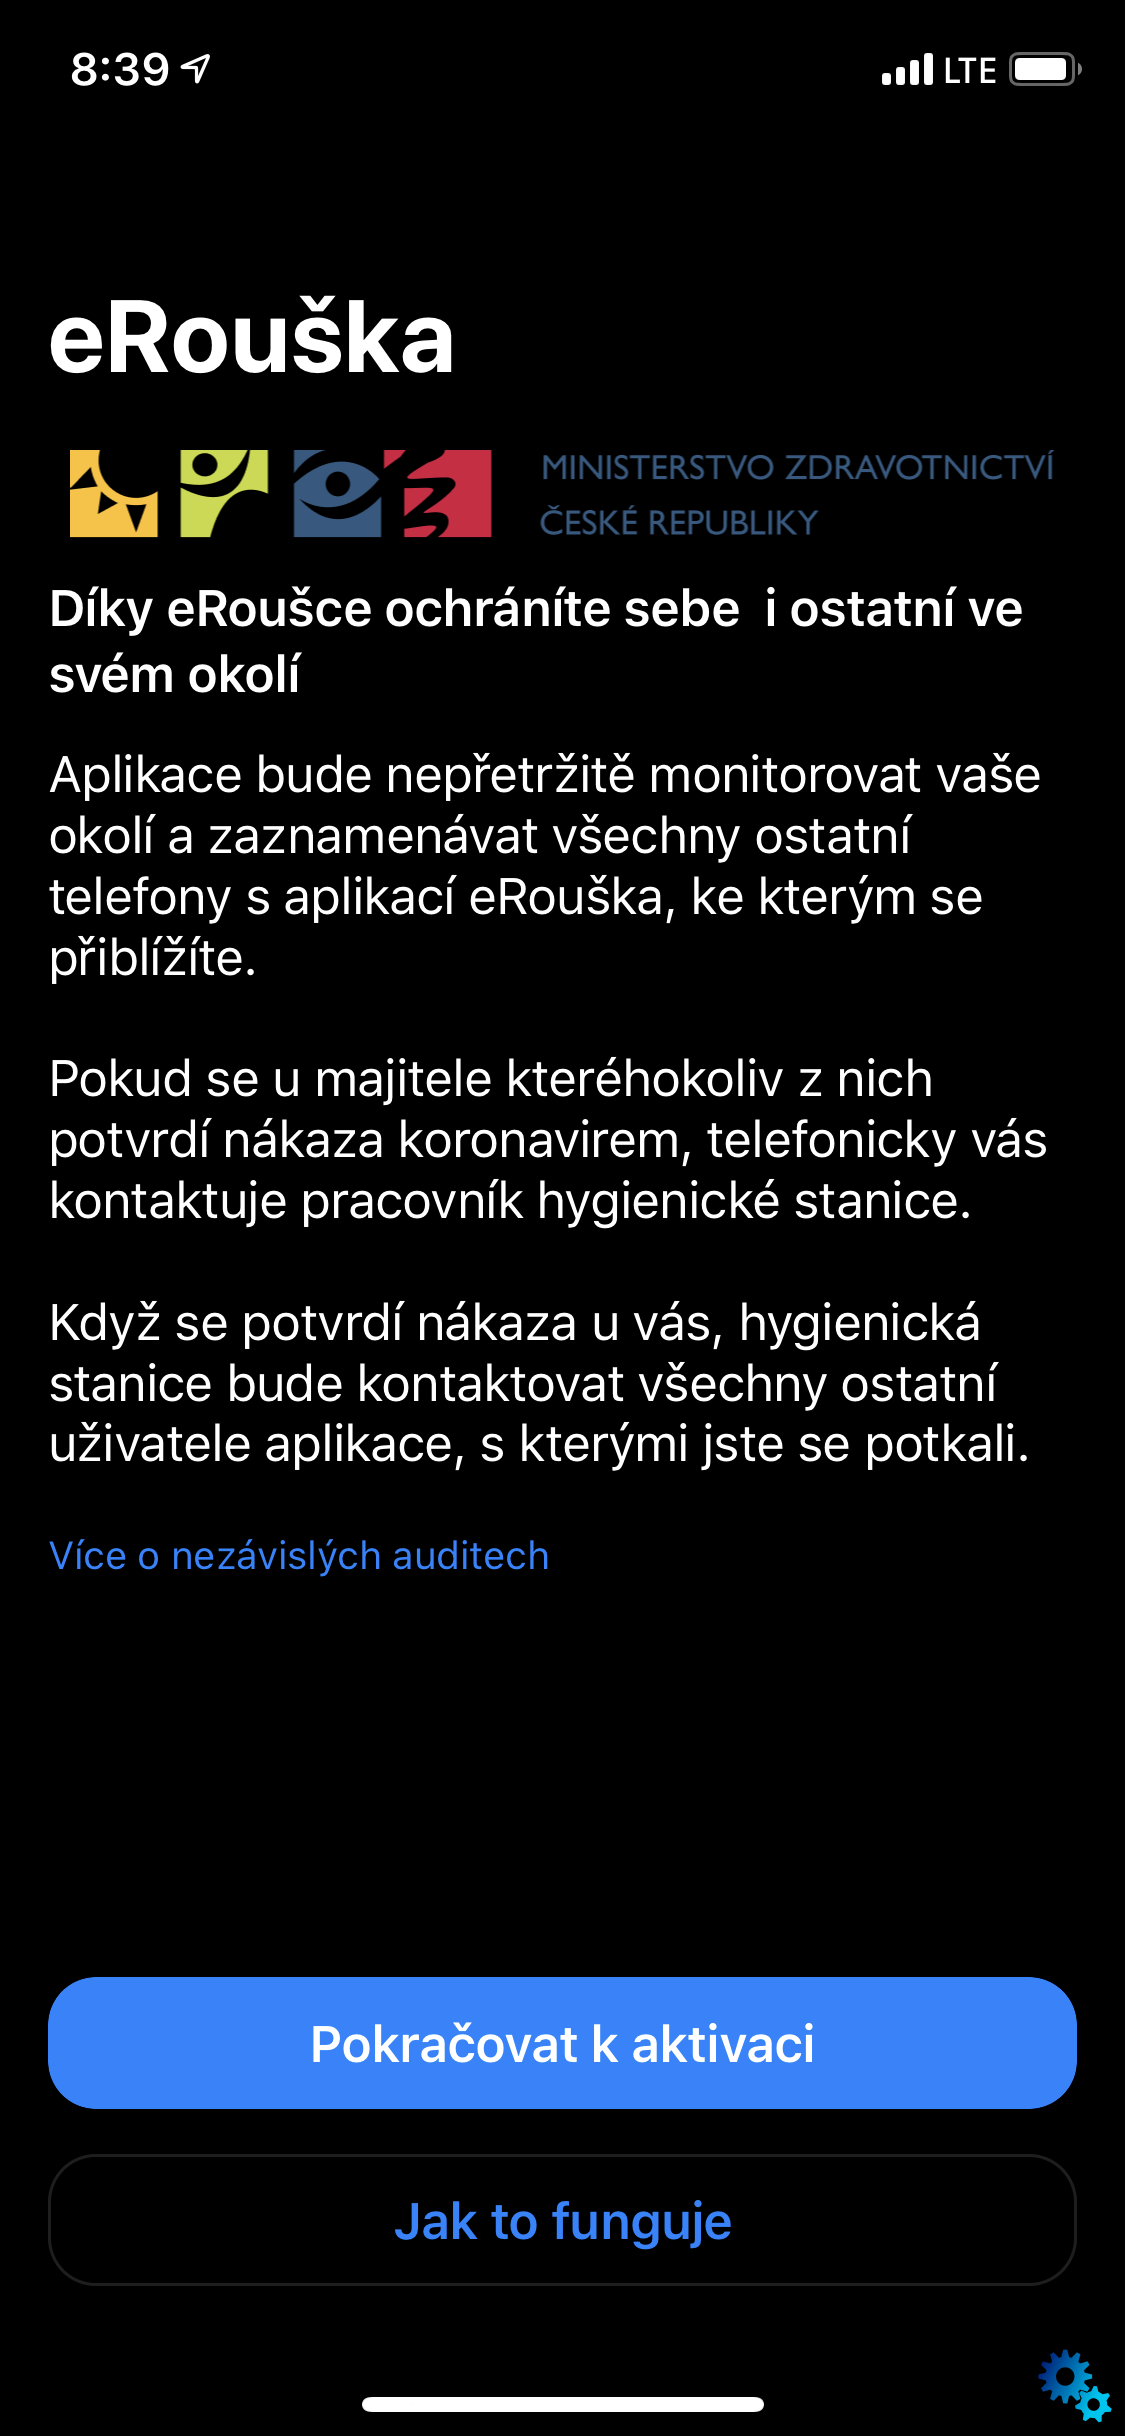 The application of eRouška for the fight against coronavirus in the Czech Republic has already arrived on iPhones